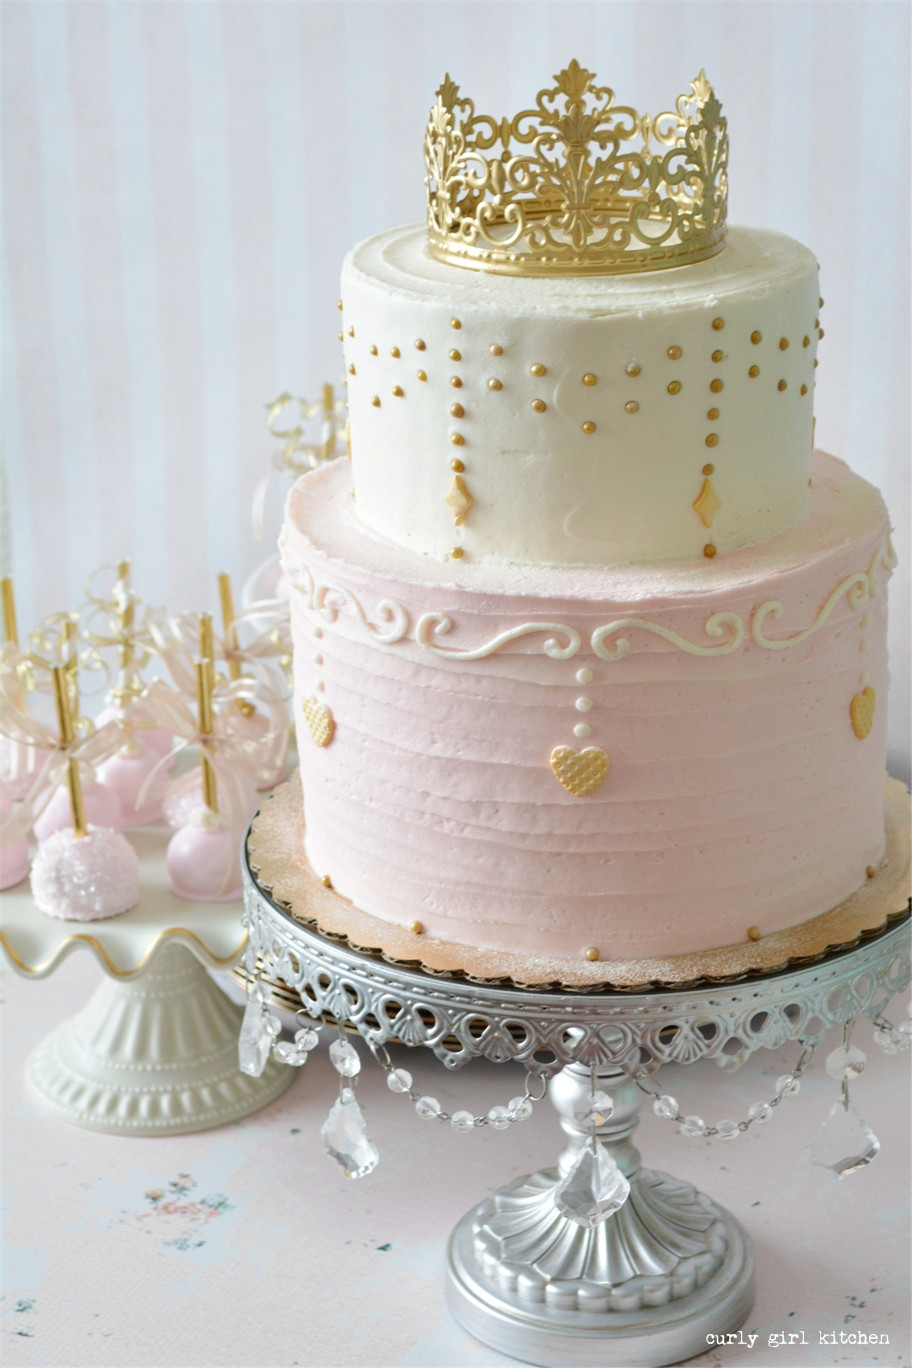 Best ideas about Princess Birthday Cake . Save or Pin Curly Girl Kitchen Pink and Gold Princess Party Cake Now.